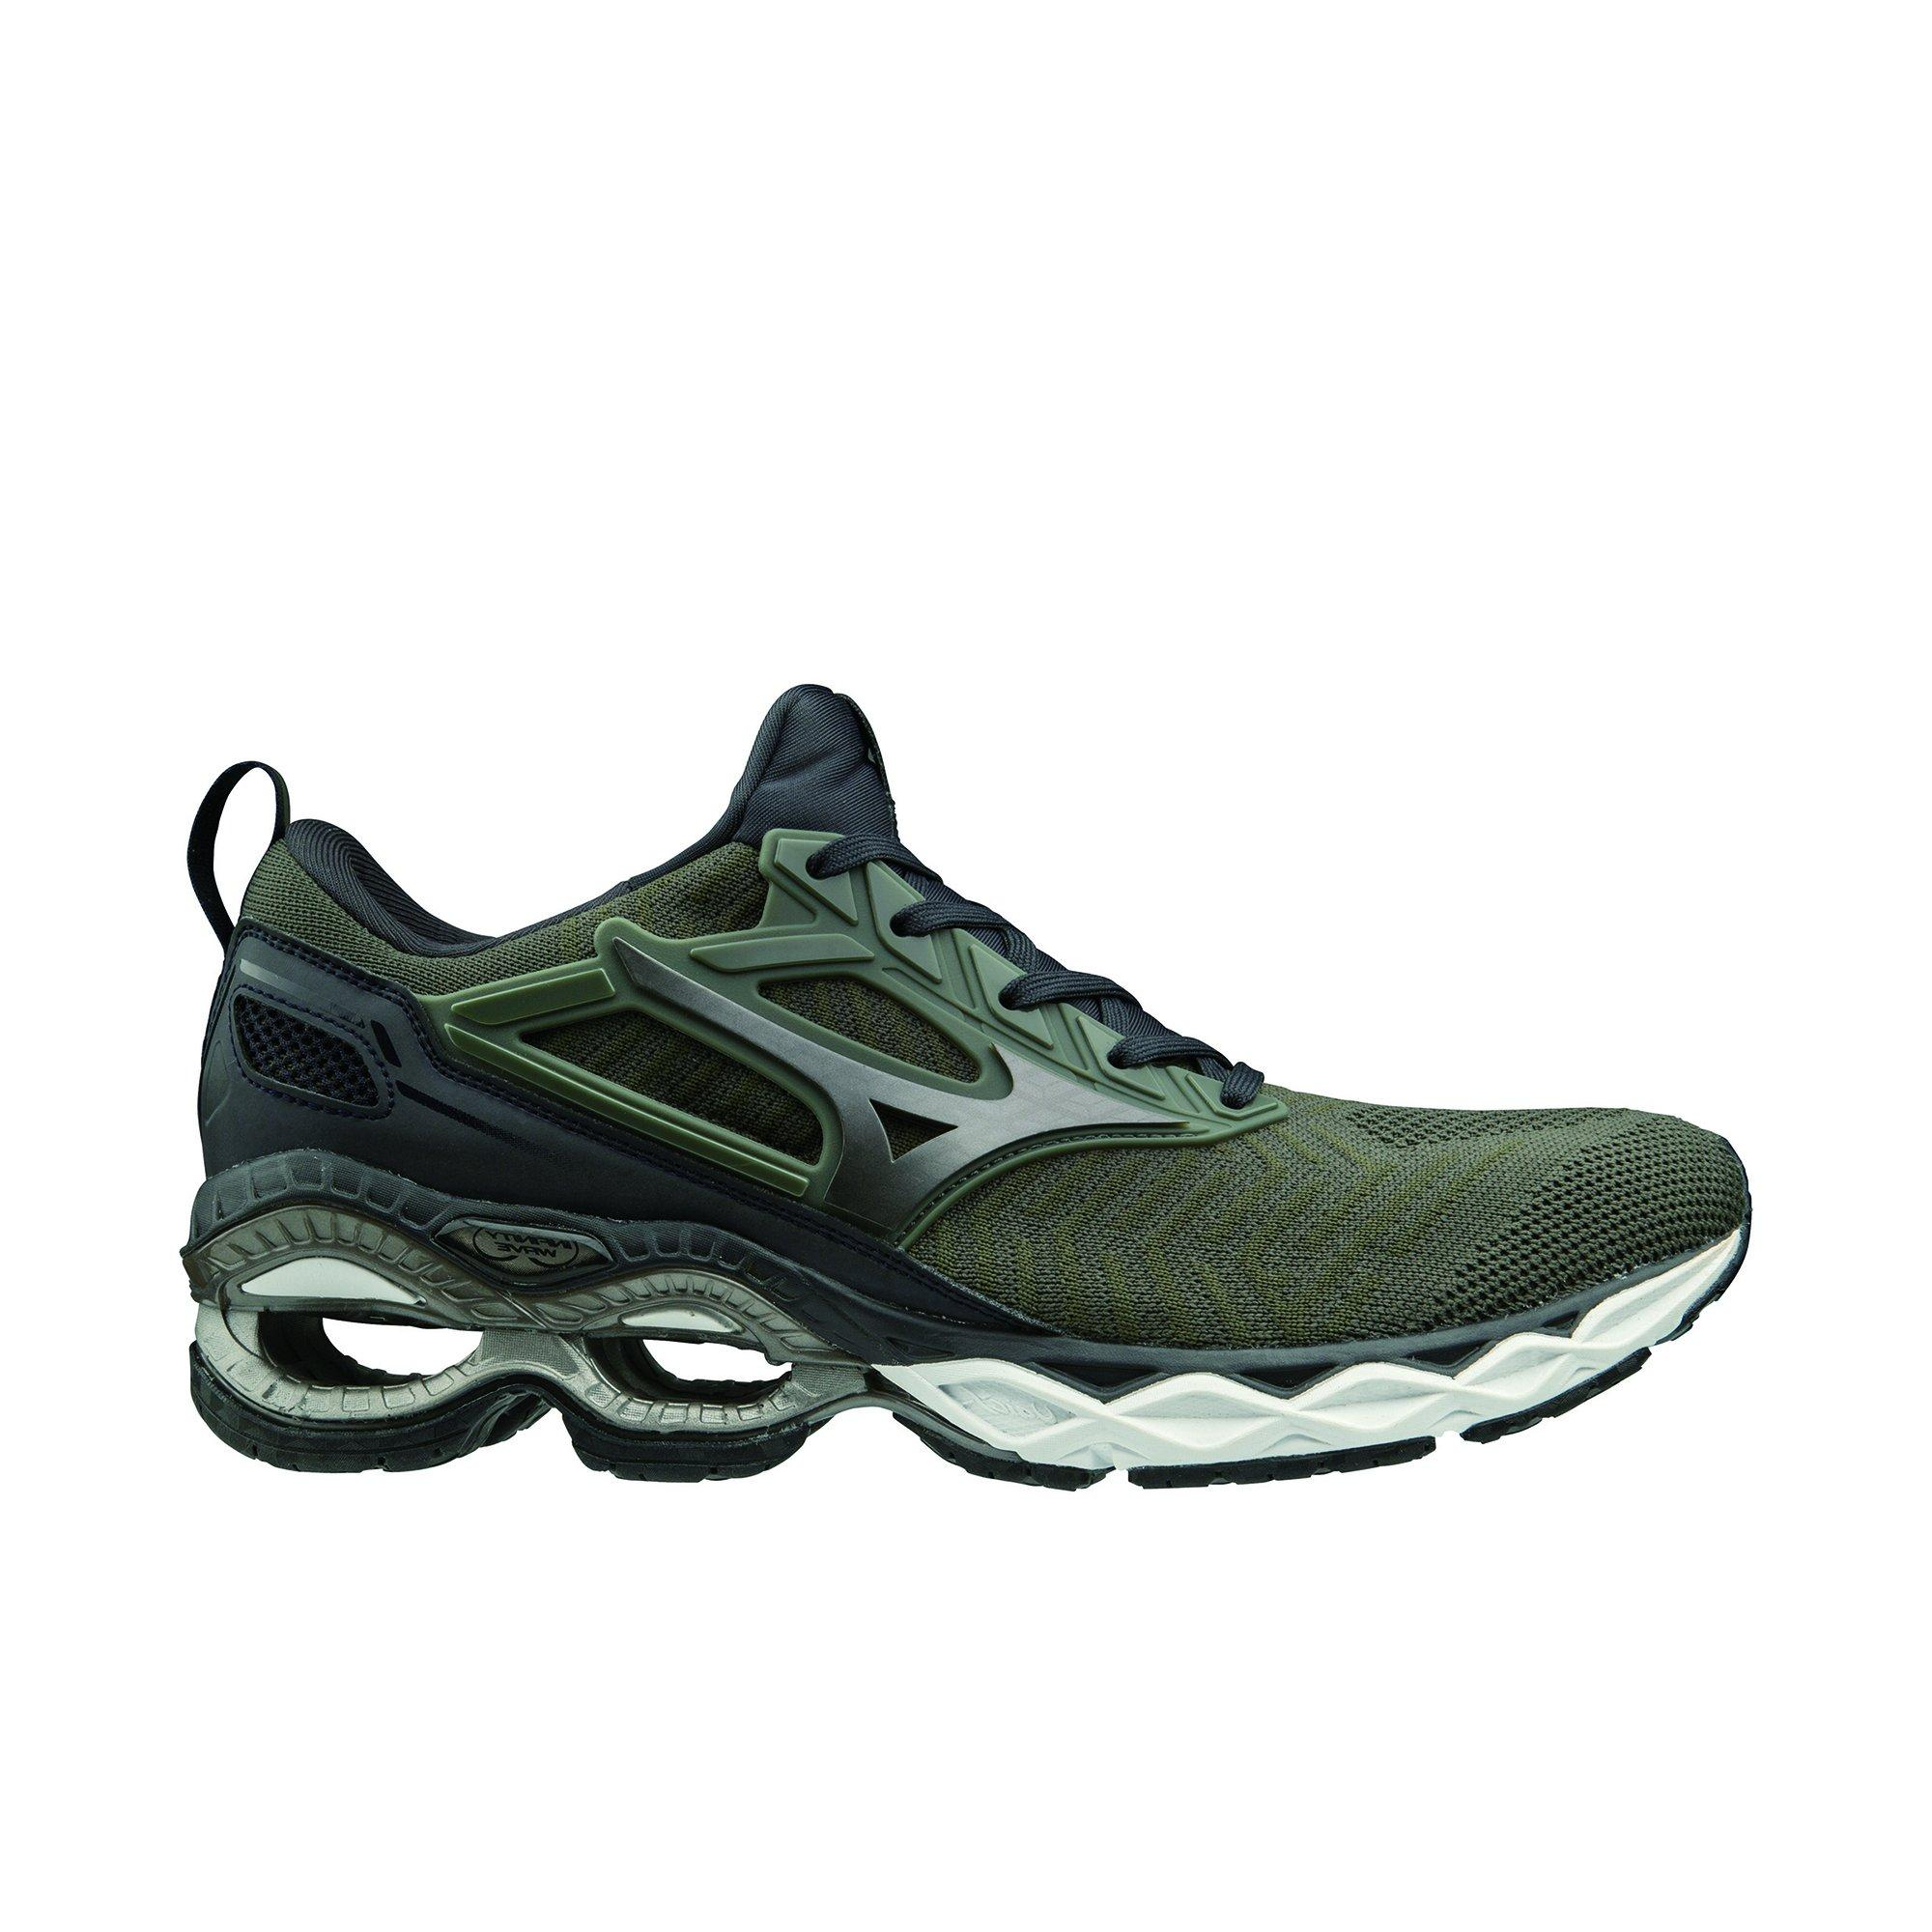 mizuno mens running shoes size 11 youtube tall free 5.0